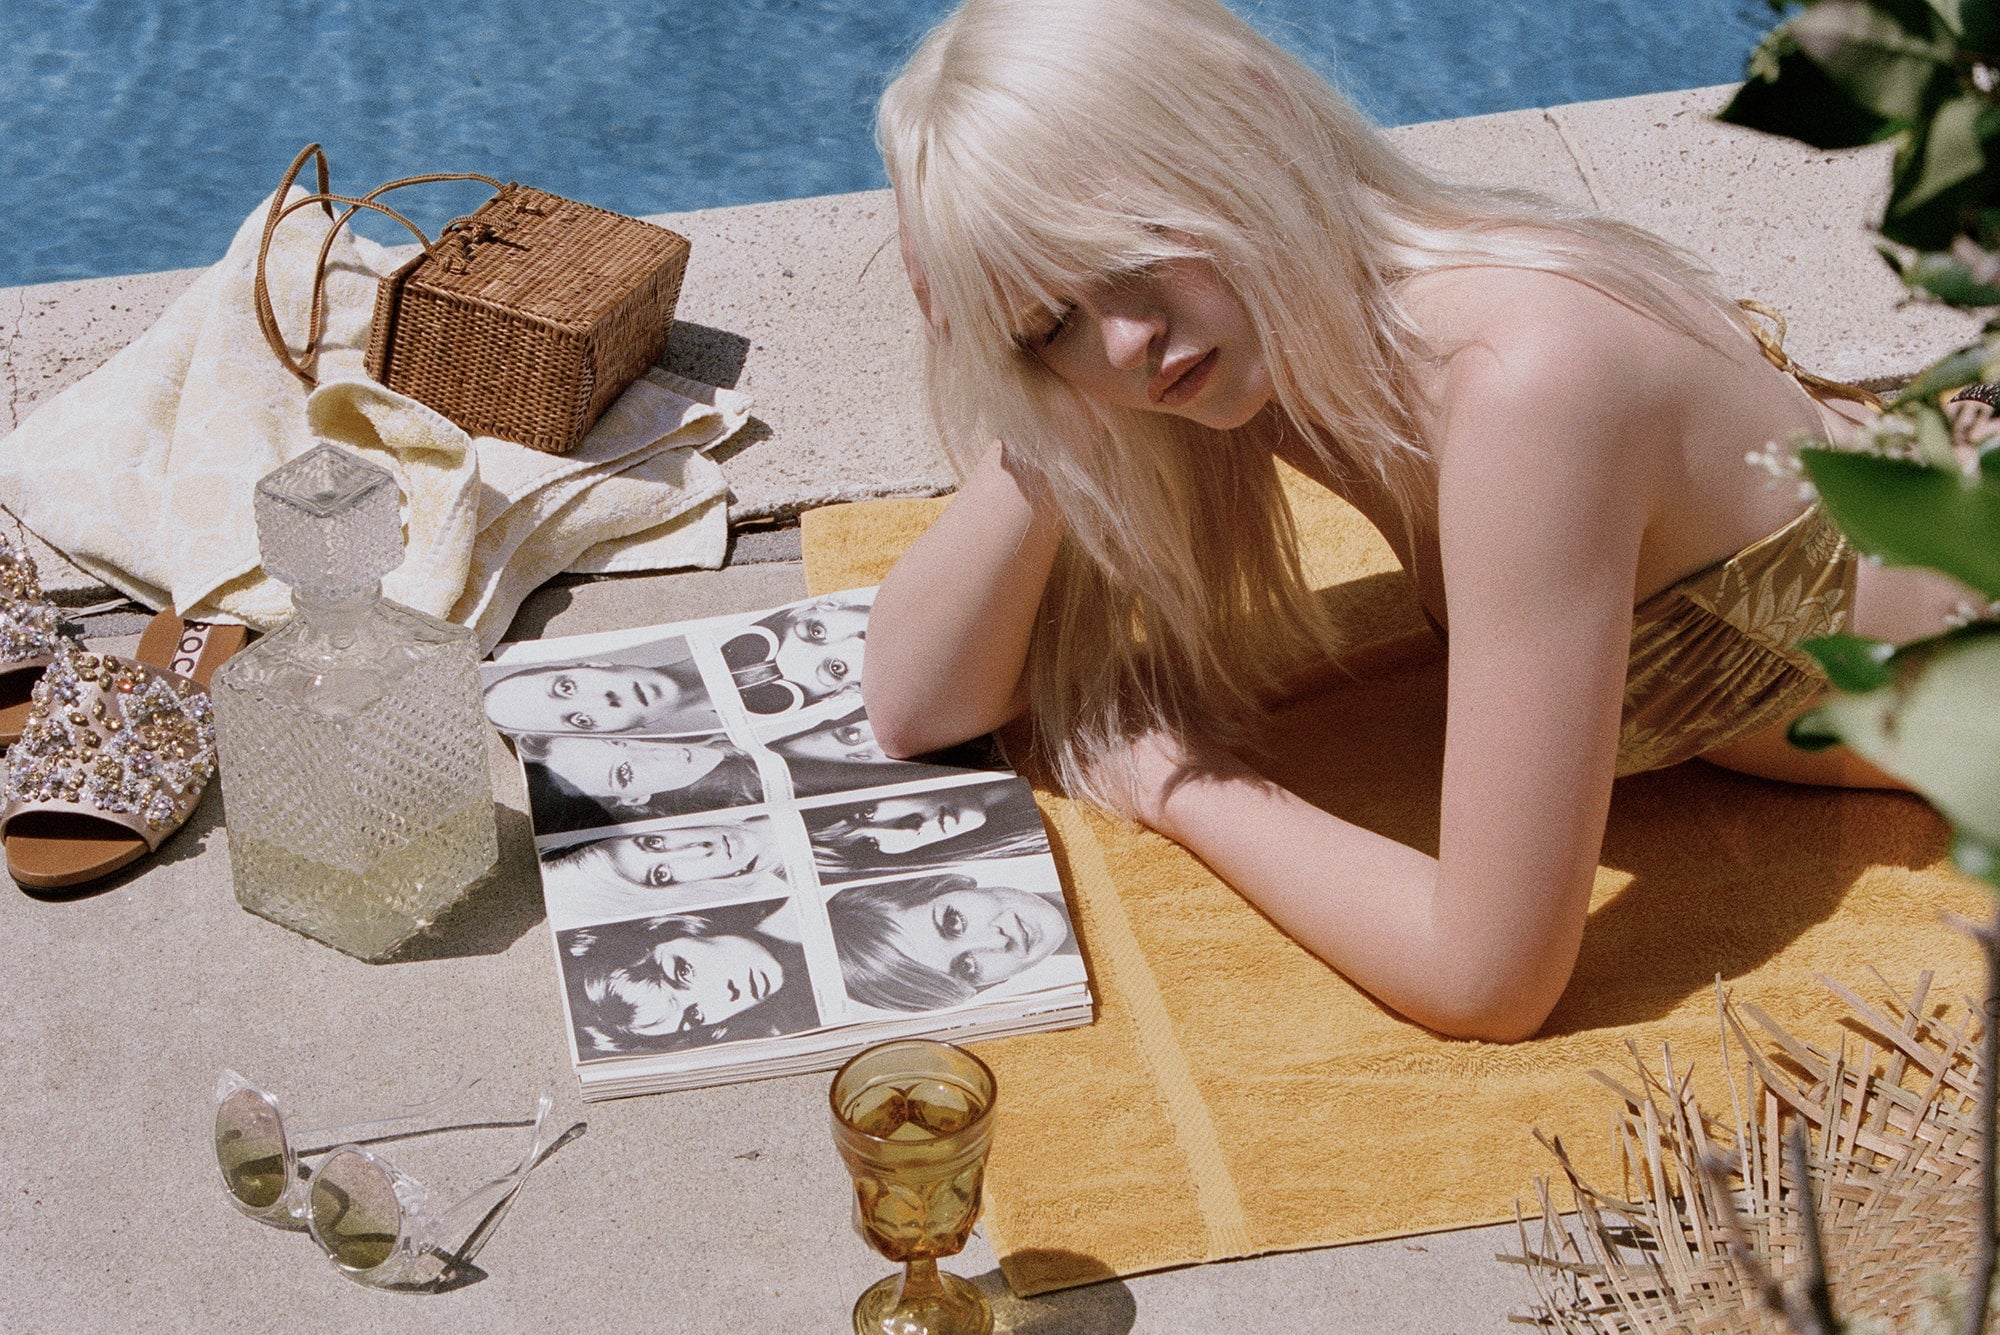 Novella Royale Swim Lookbook by Jason Lee Parry